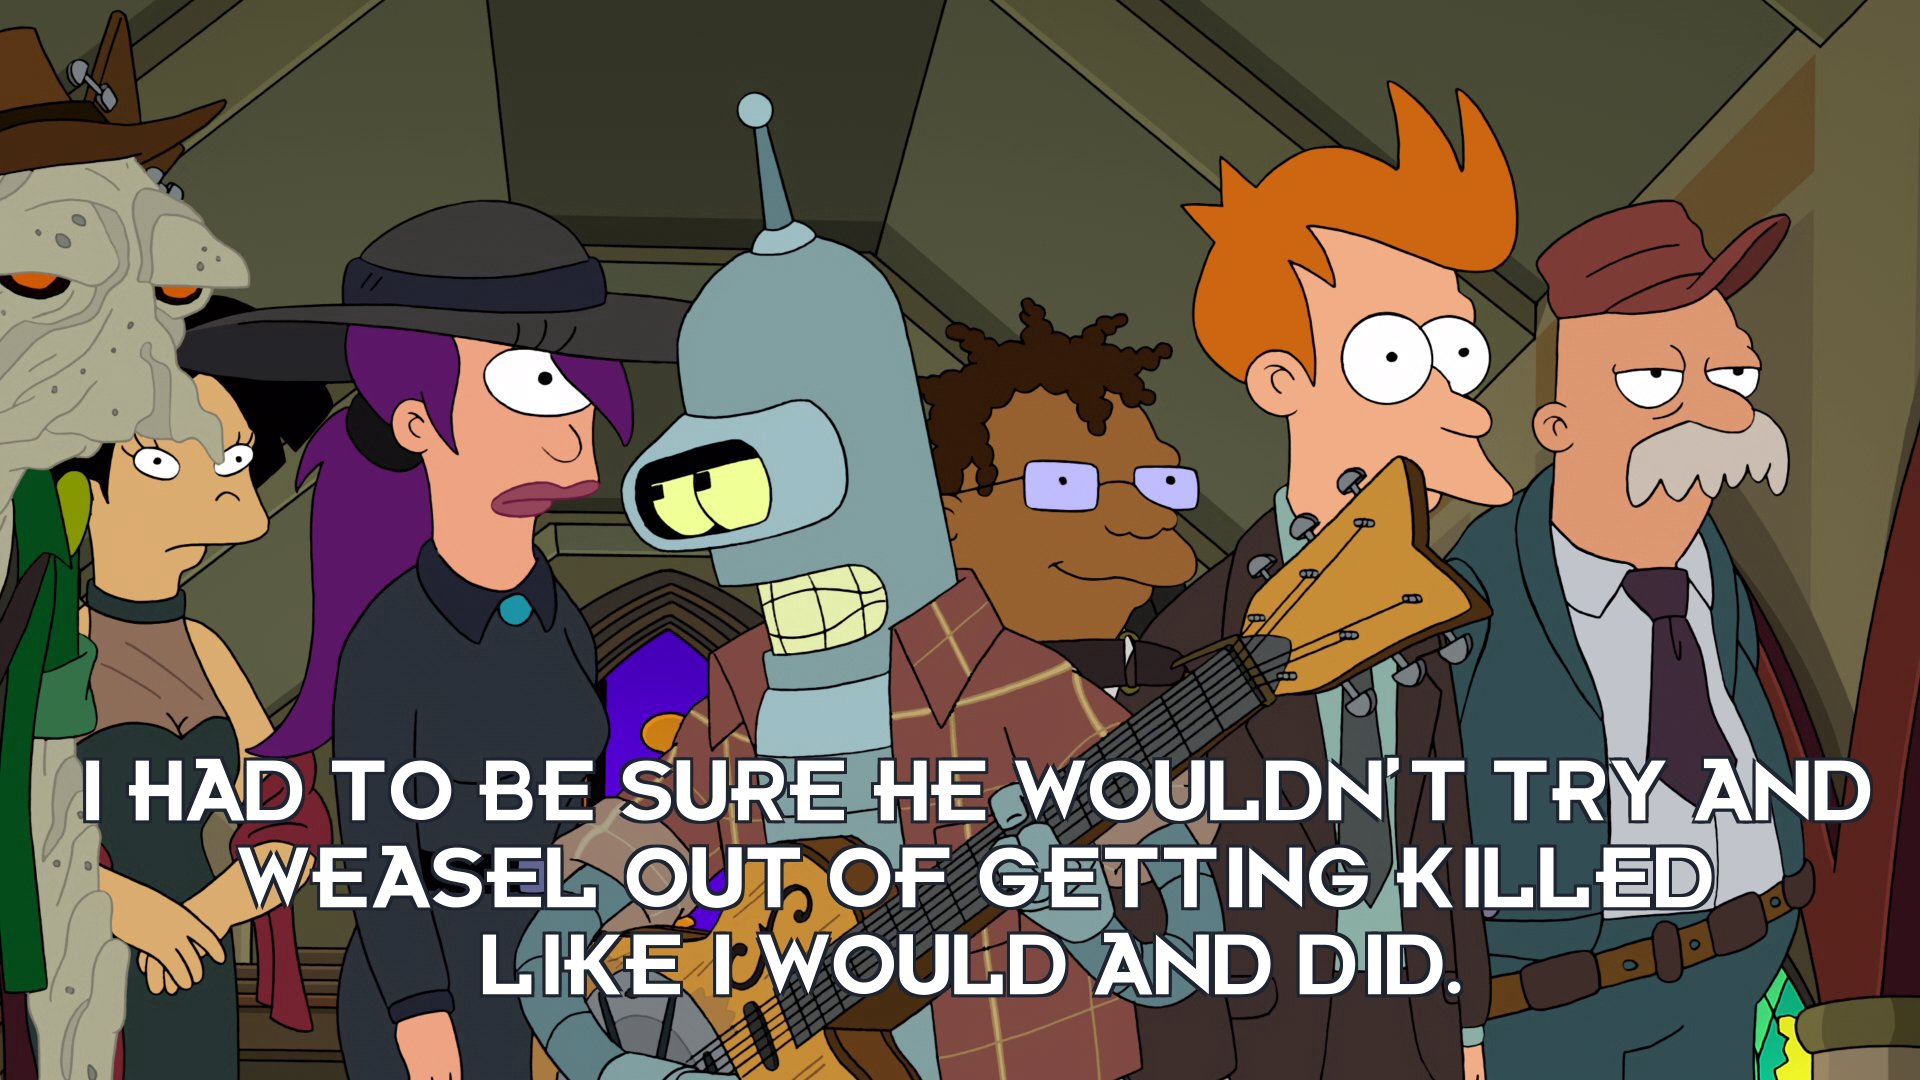 Bender Bending Rodriguez: I had to be sure he wouldn't try and weasel out of getting killed like I would and did.